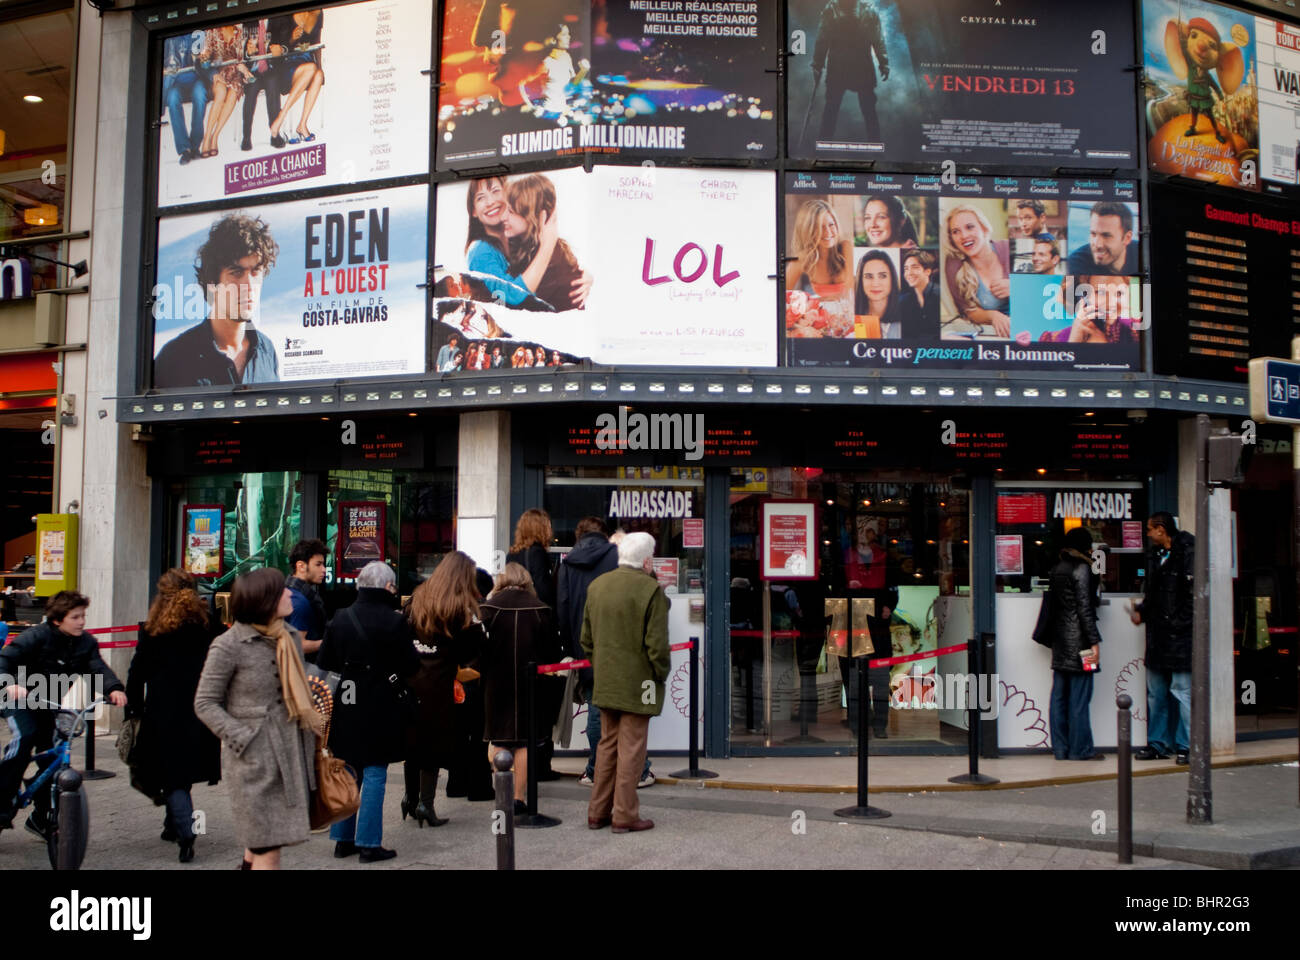 paris france people queuing at gaumont cinema theater movie stock photo royalty free image. Black Bedroom Furniture Sets. Home Design Ideas